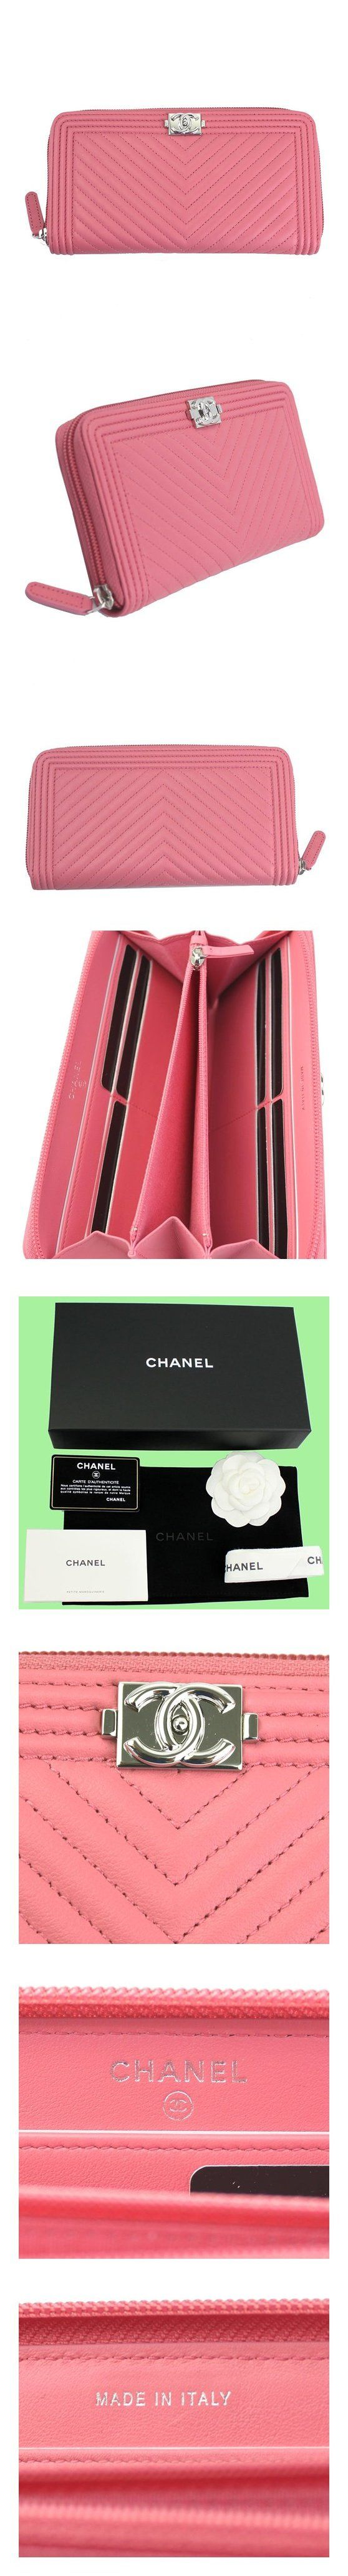 chanel boy chevron v stitch pink leather zip around long wallet a80487 apparel accessory